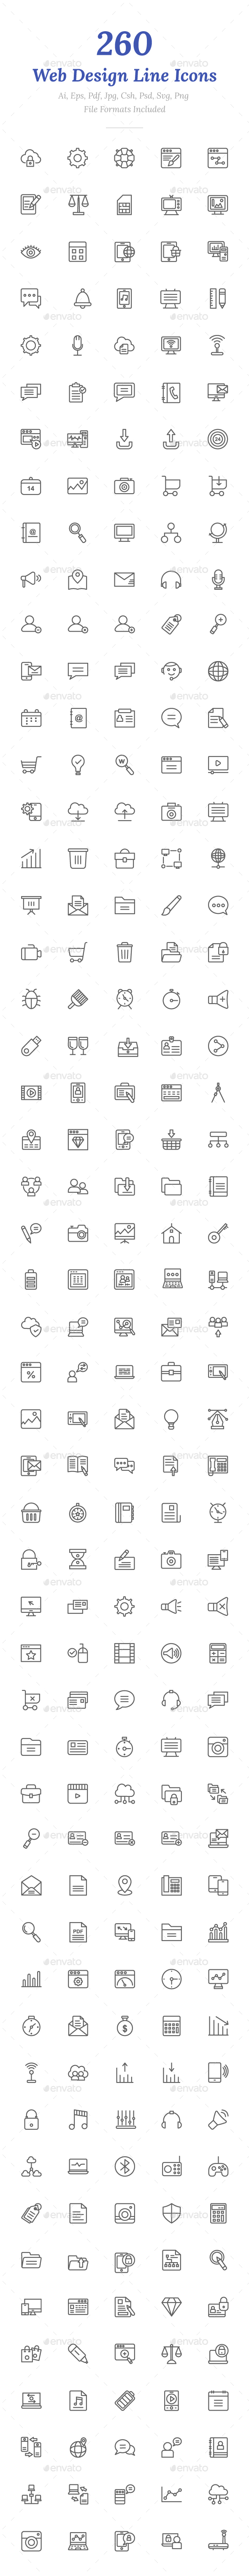 260 Web Design Line Icons - Icons